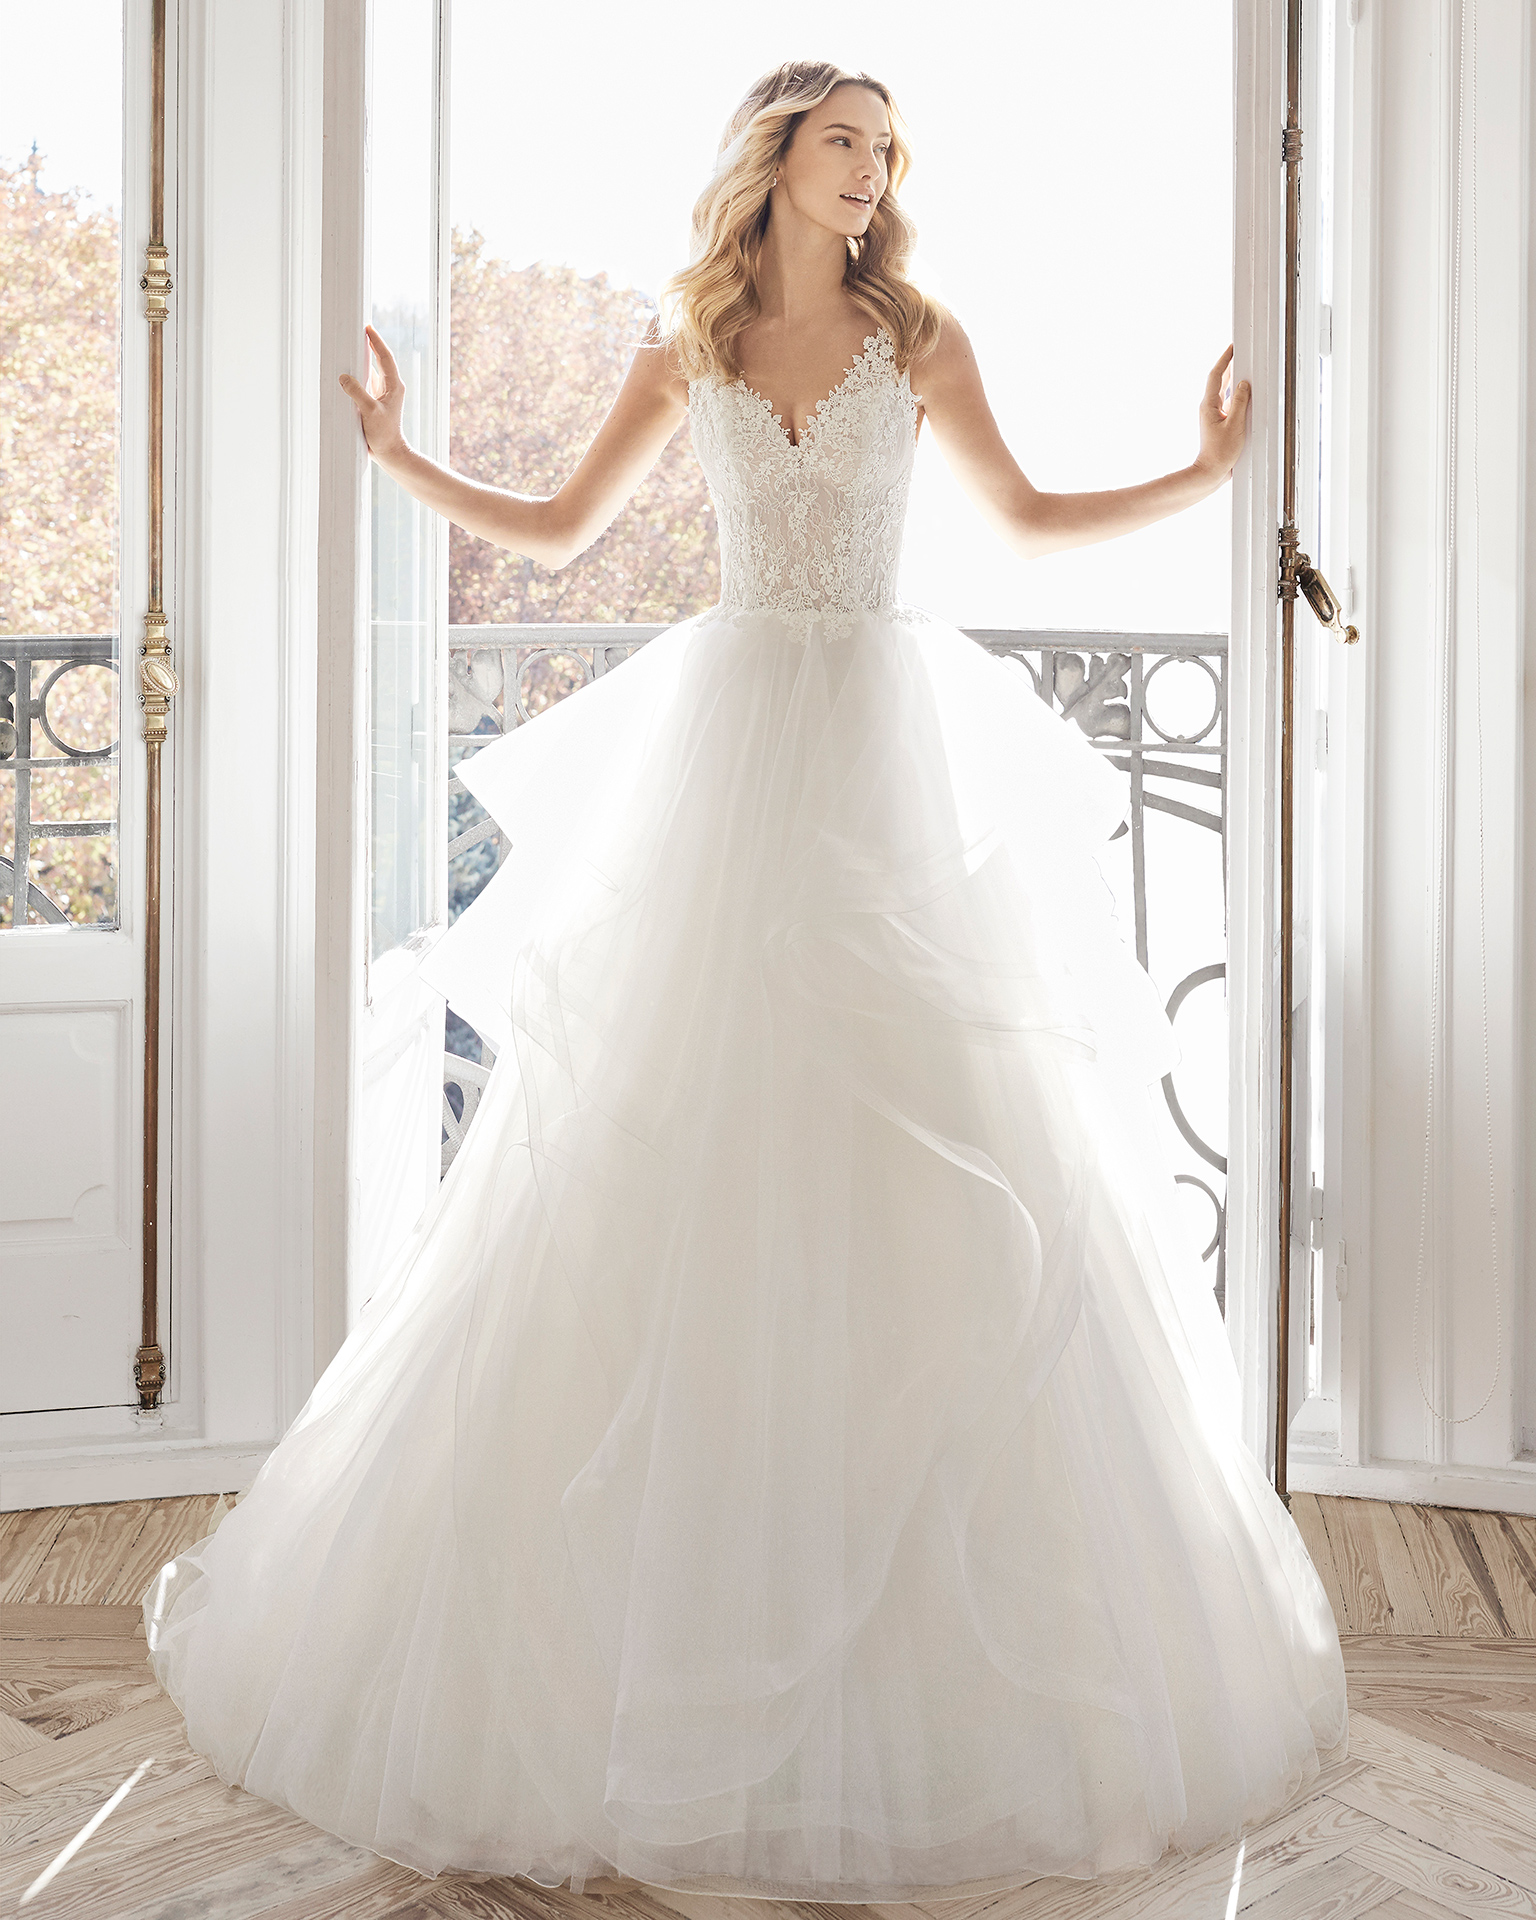 Princess-style wedding dress in lace with tulle flounces. V-neckline and back. Available in natural. 2019 AIRE BARCELONA Collection.